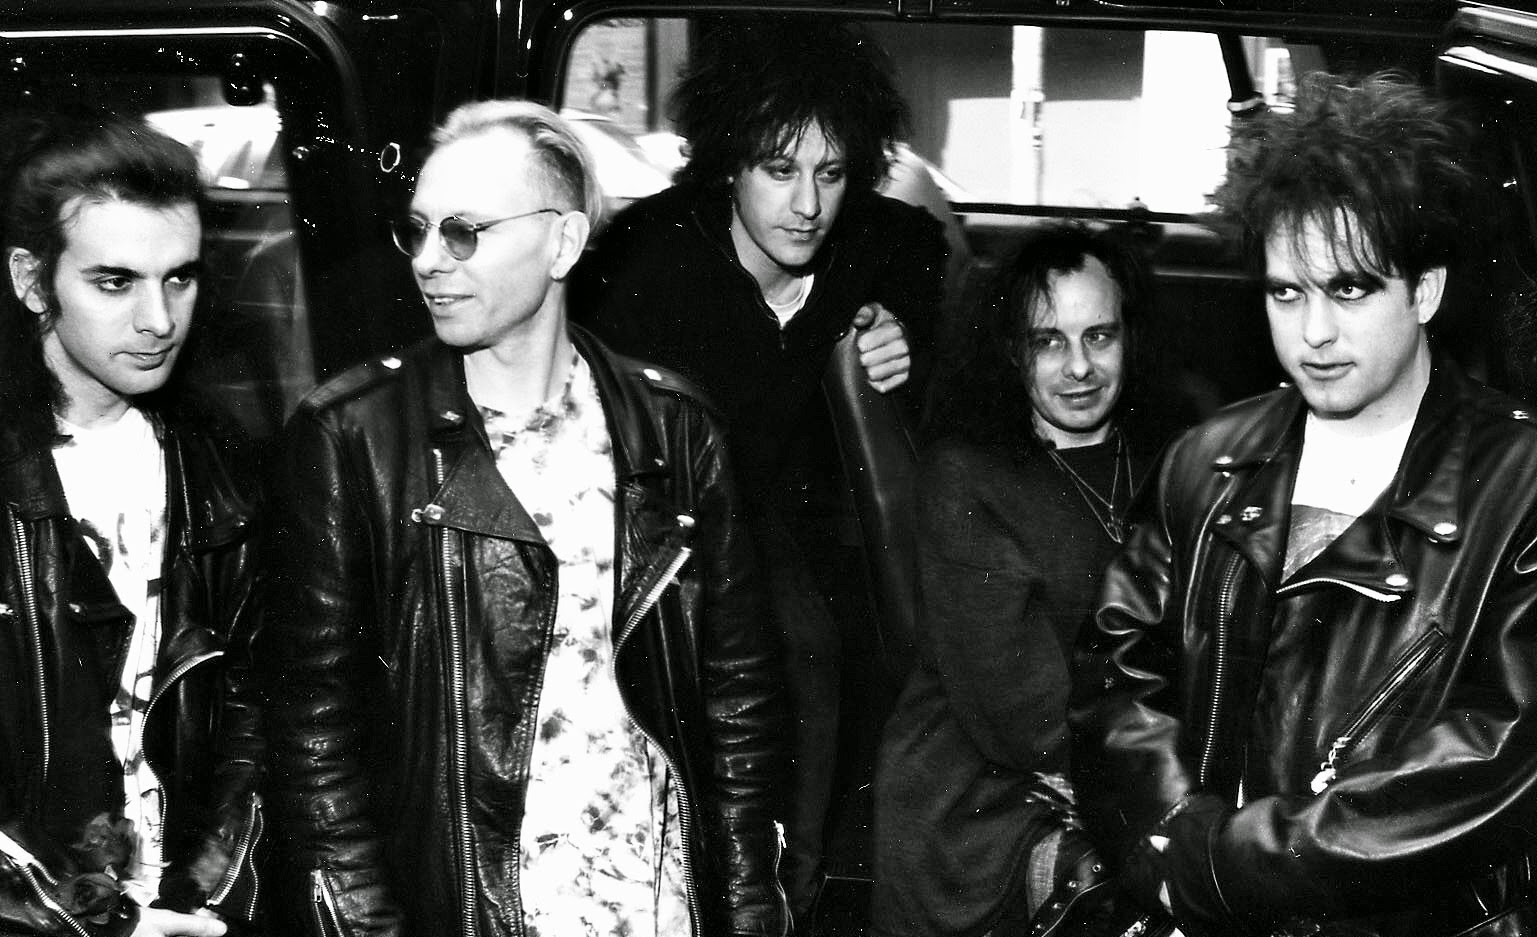 The Cure Discography Blogspot Related Keywords & Suggestions - The